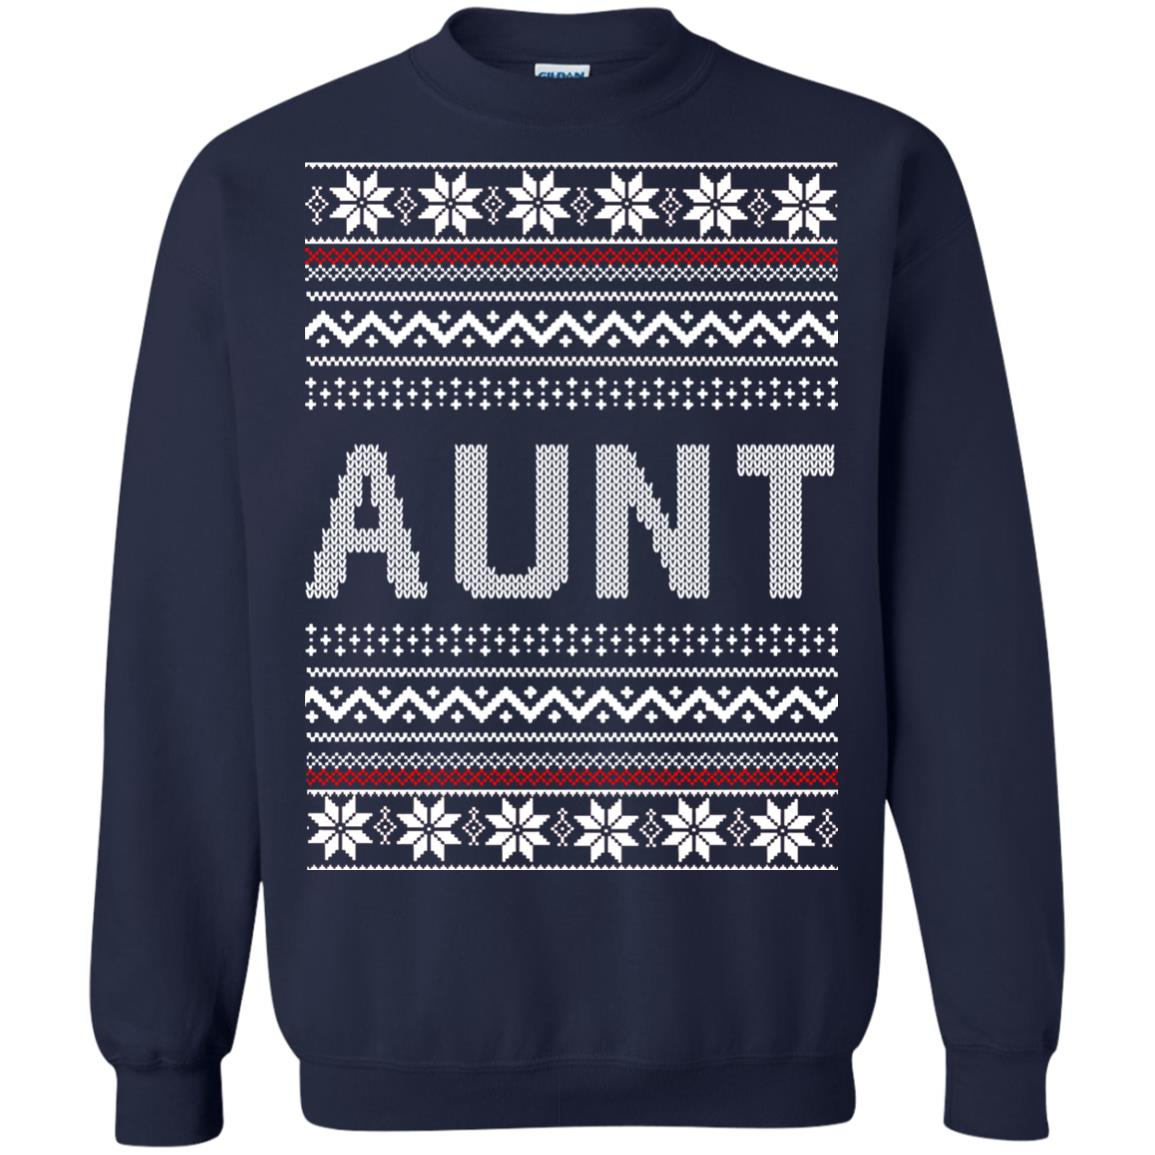 image 4618 - Aunt Ugly Christmas Sweater, Shirt, Hoodie